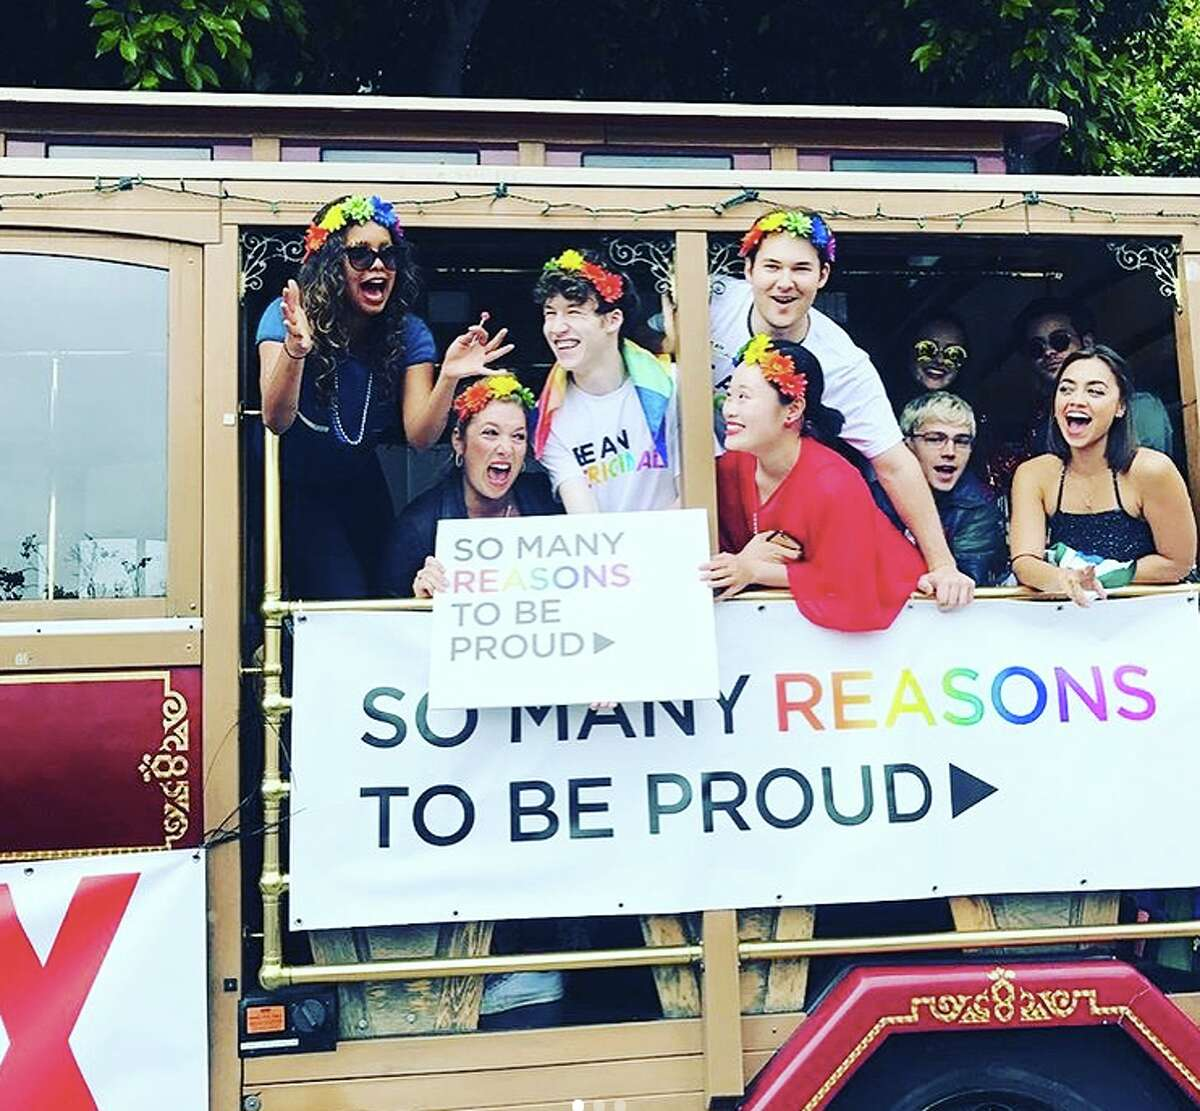 """Stars from Netflix shows """"Orange is the New Black"""" and """"13 Reasons Why"""" attended San Francisco Pride on Sunday, June 25. Pictured is the cast of """"13 Reasons Why."""""""